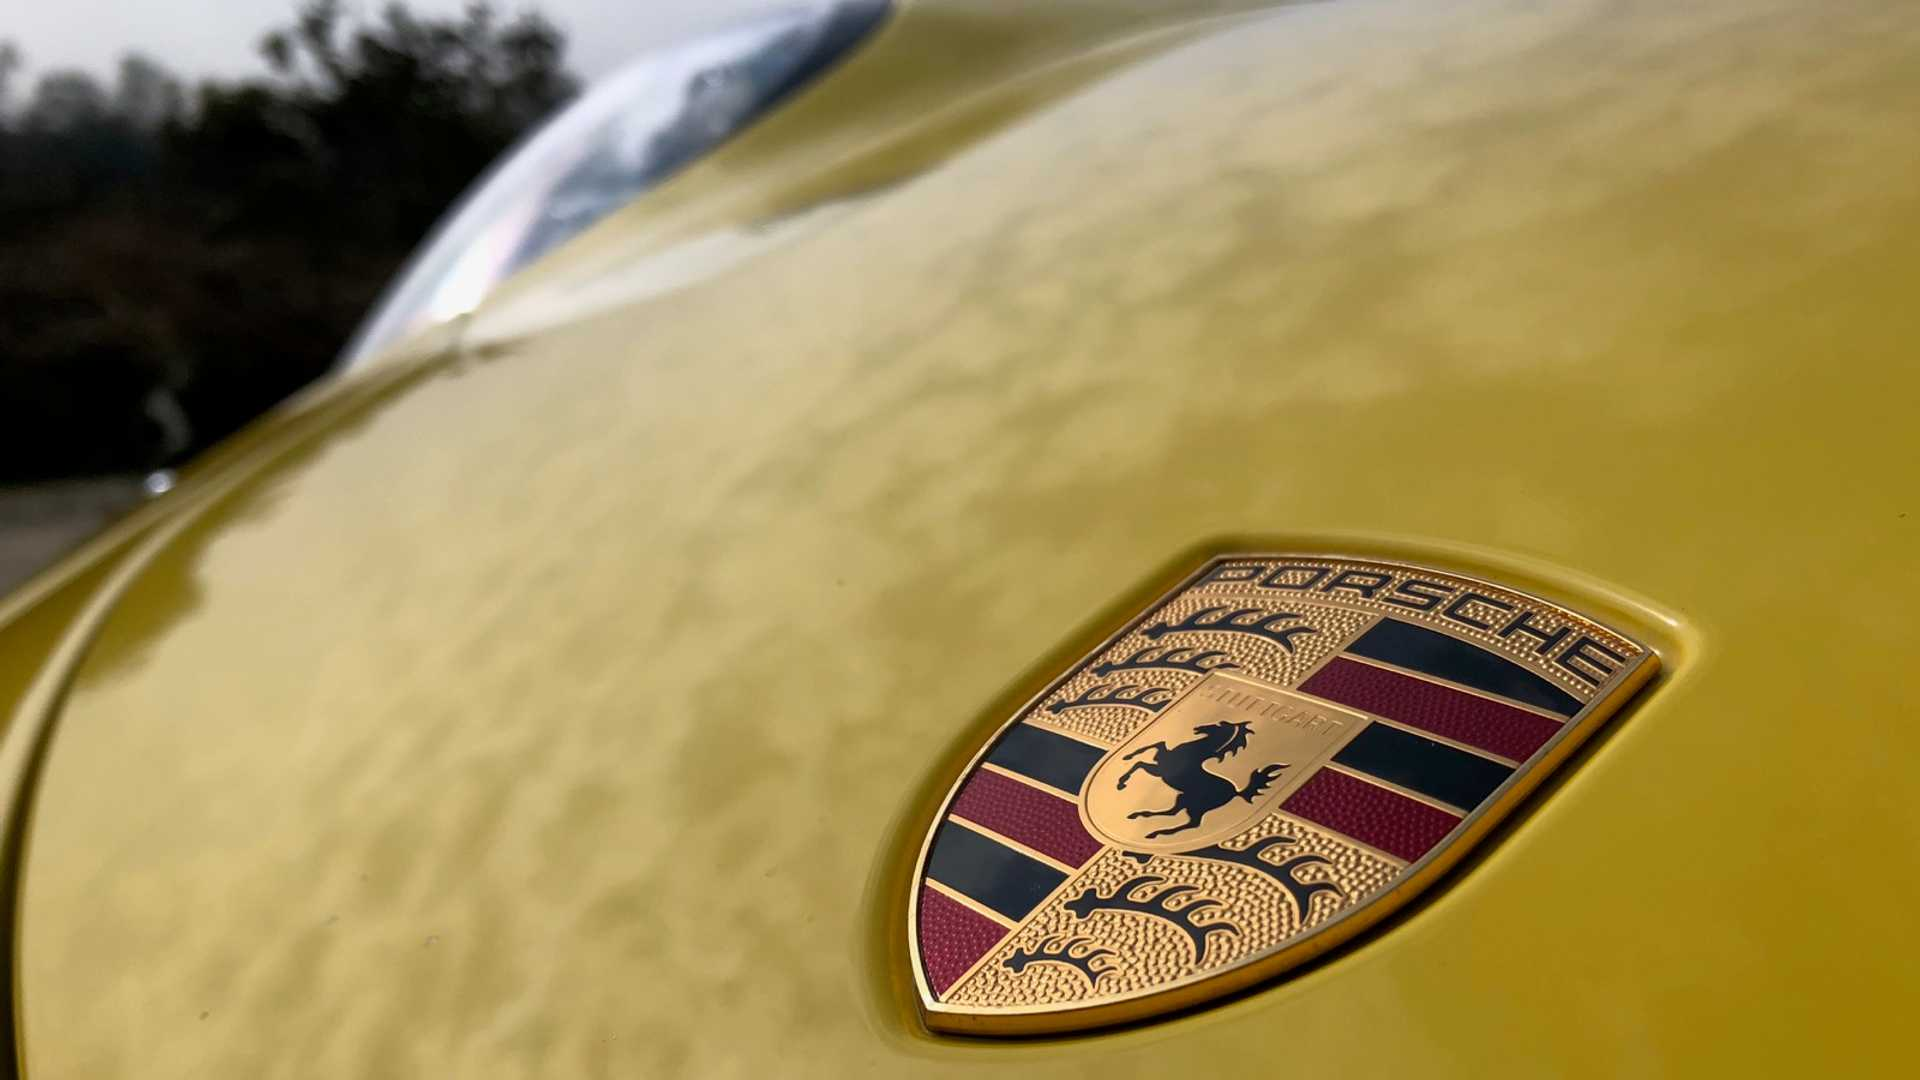 Why The 991 Porsche 911 Carrera T Is More Collectable Than A